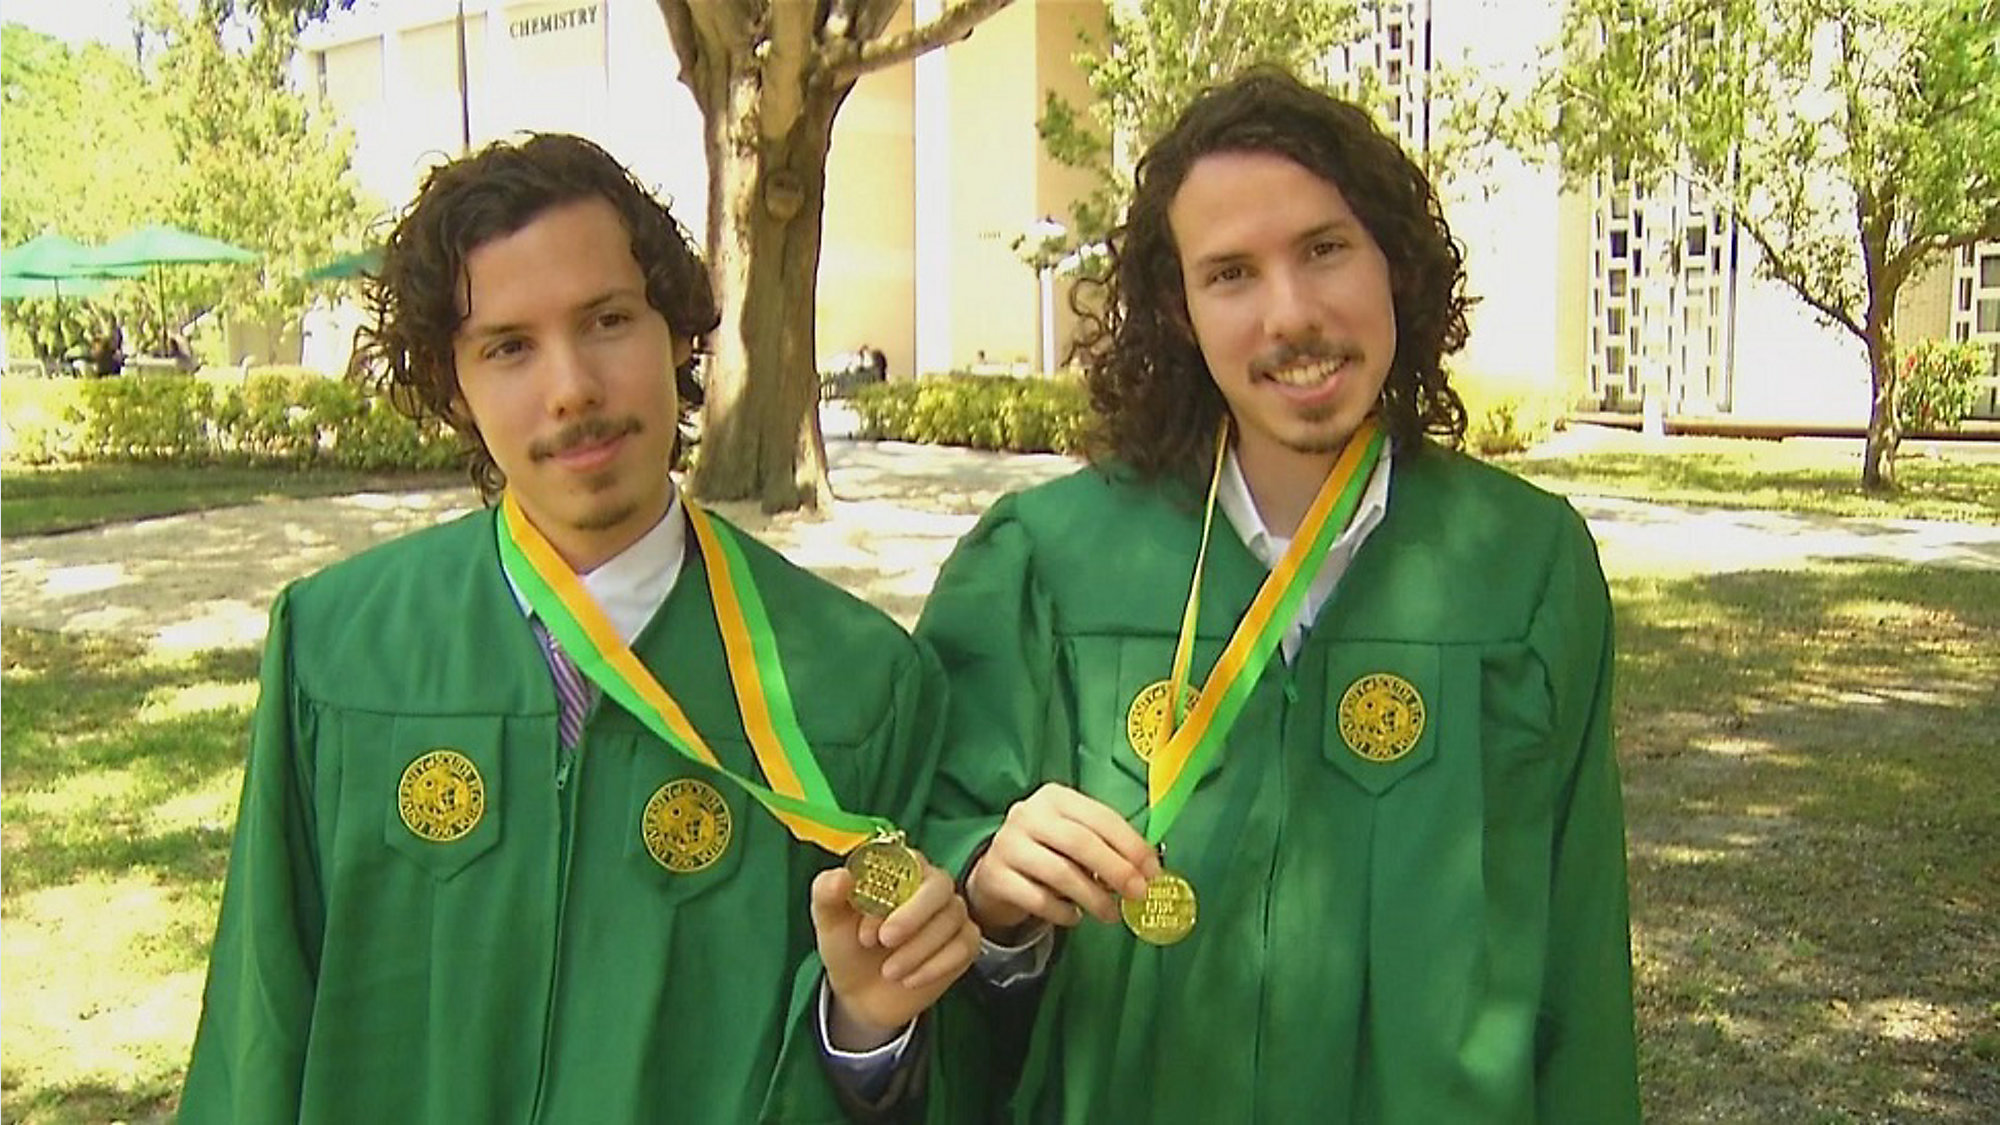 Twin brothers graduate from USF in biomedical science